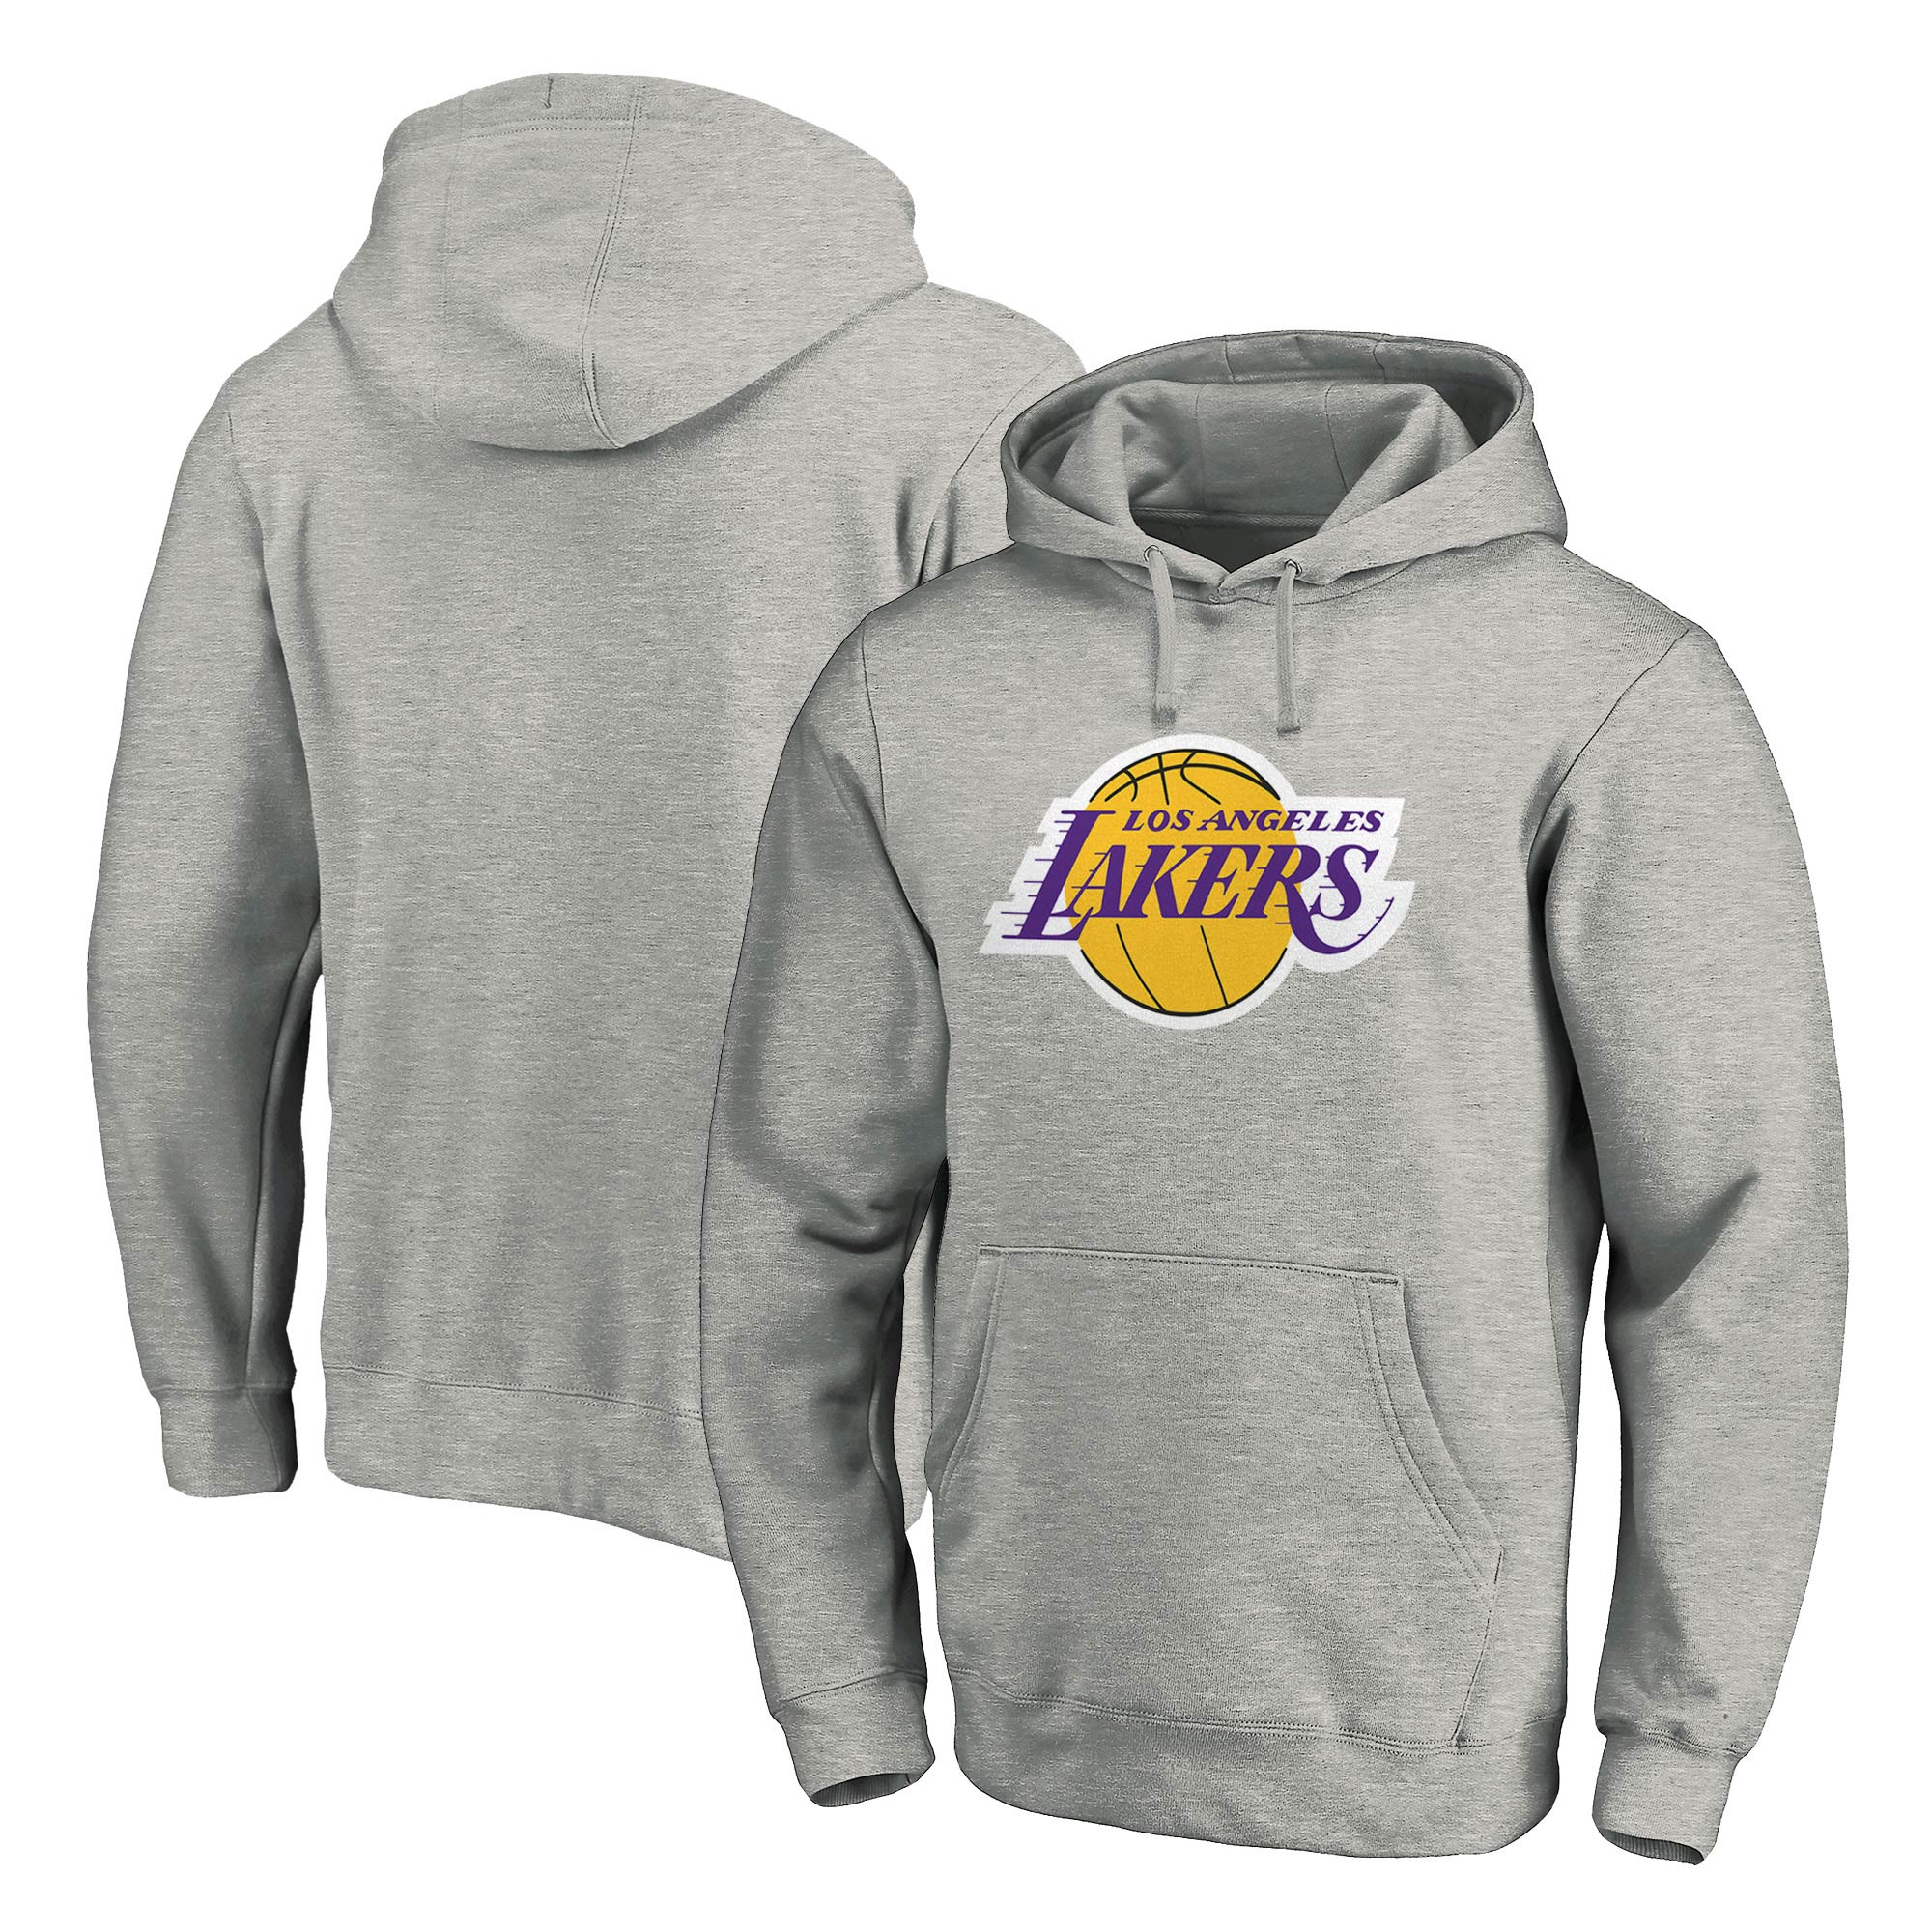 Los Angeles Lakers Fanatics Branded Team Primary Logo Pullover Hoodie - Heathered Gray